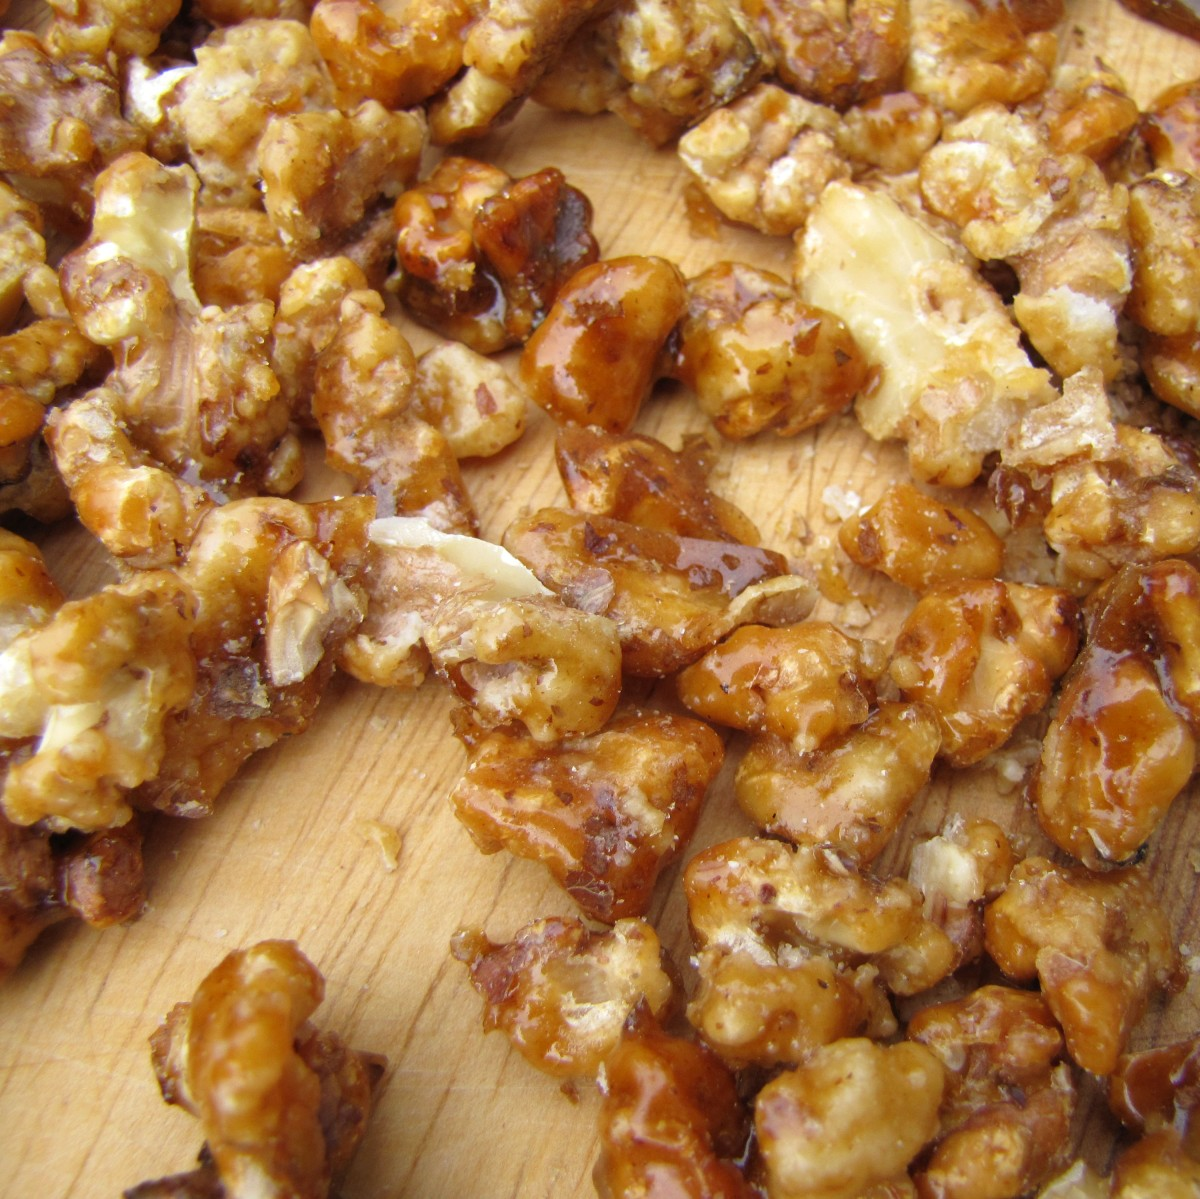 Candied Walnuts for Salads